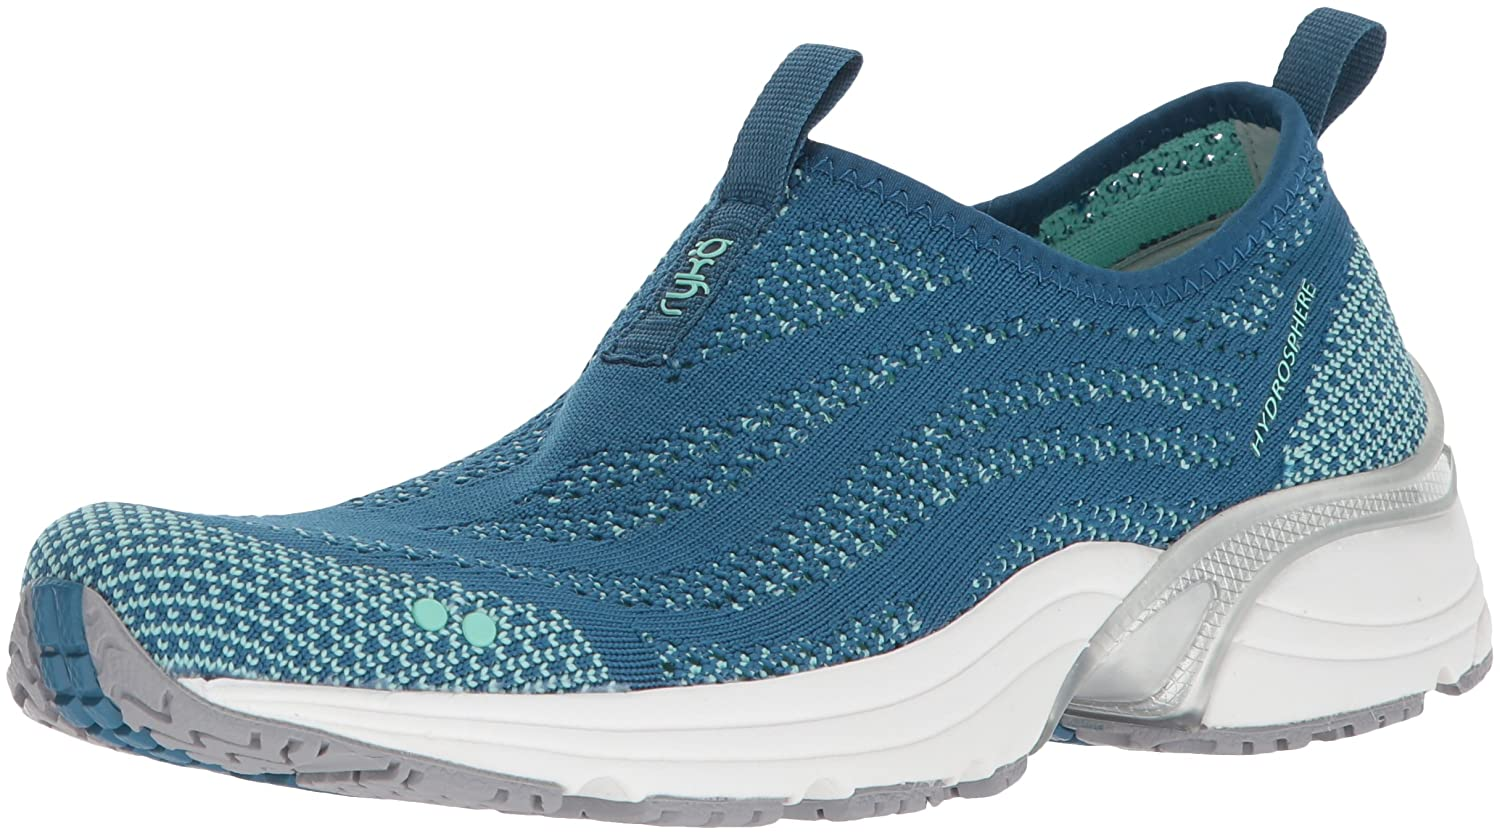 Ryka Women's Hydrosphere Cross Trainer B0757PD7DF 7 B(M) US|Seaport/Yucca Mint